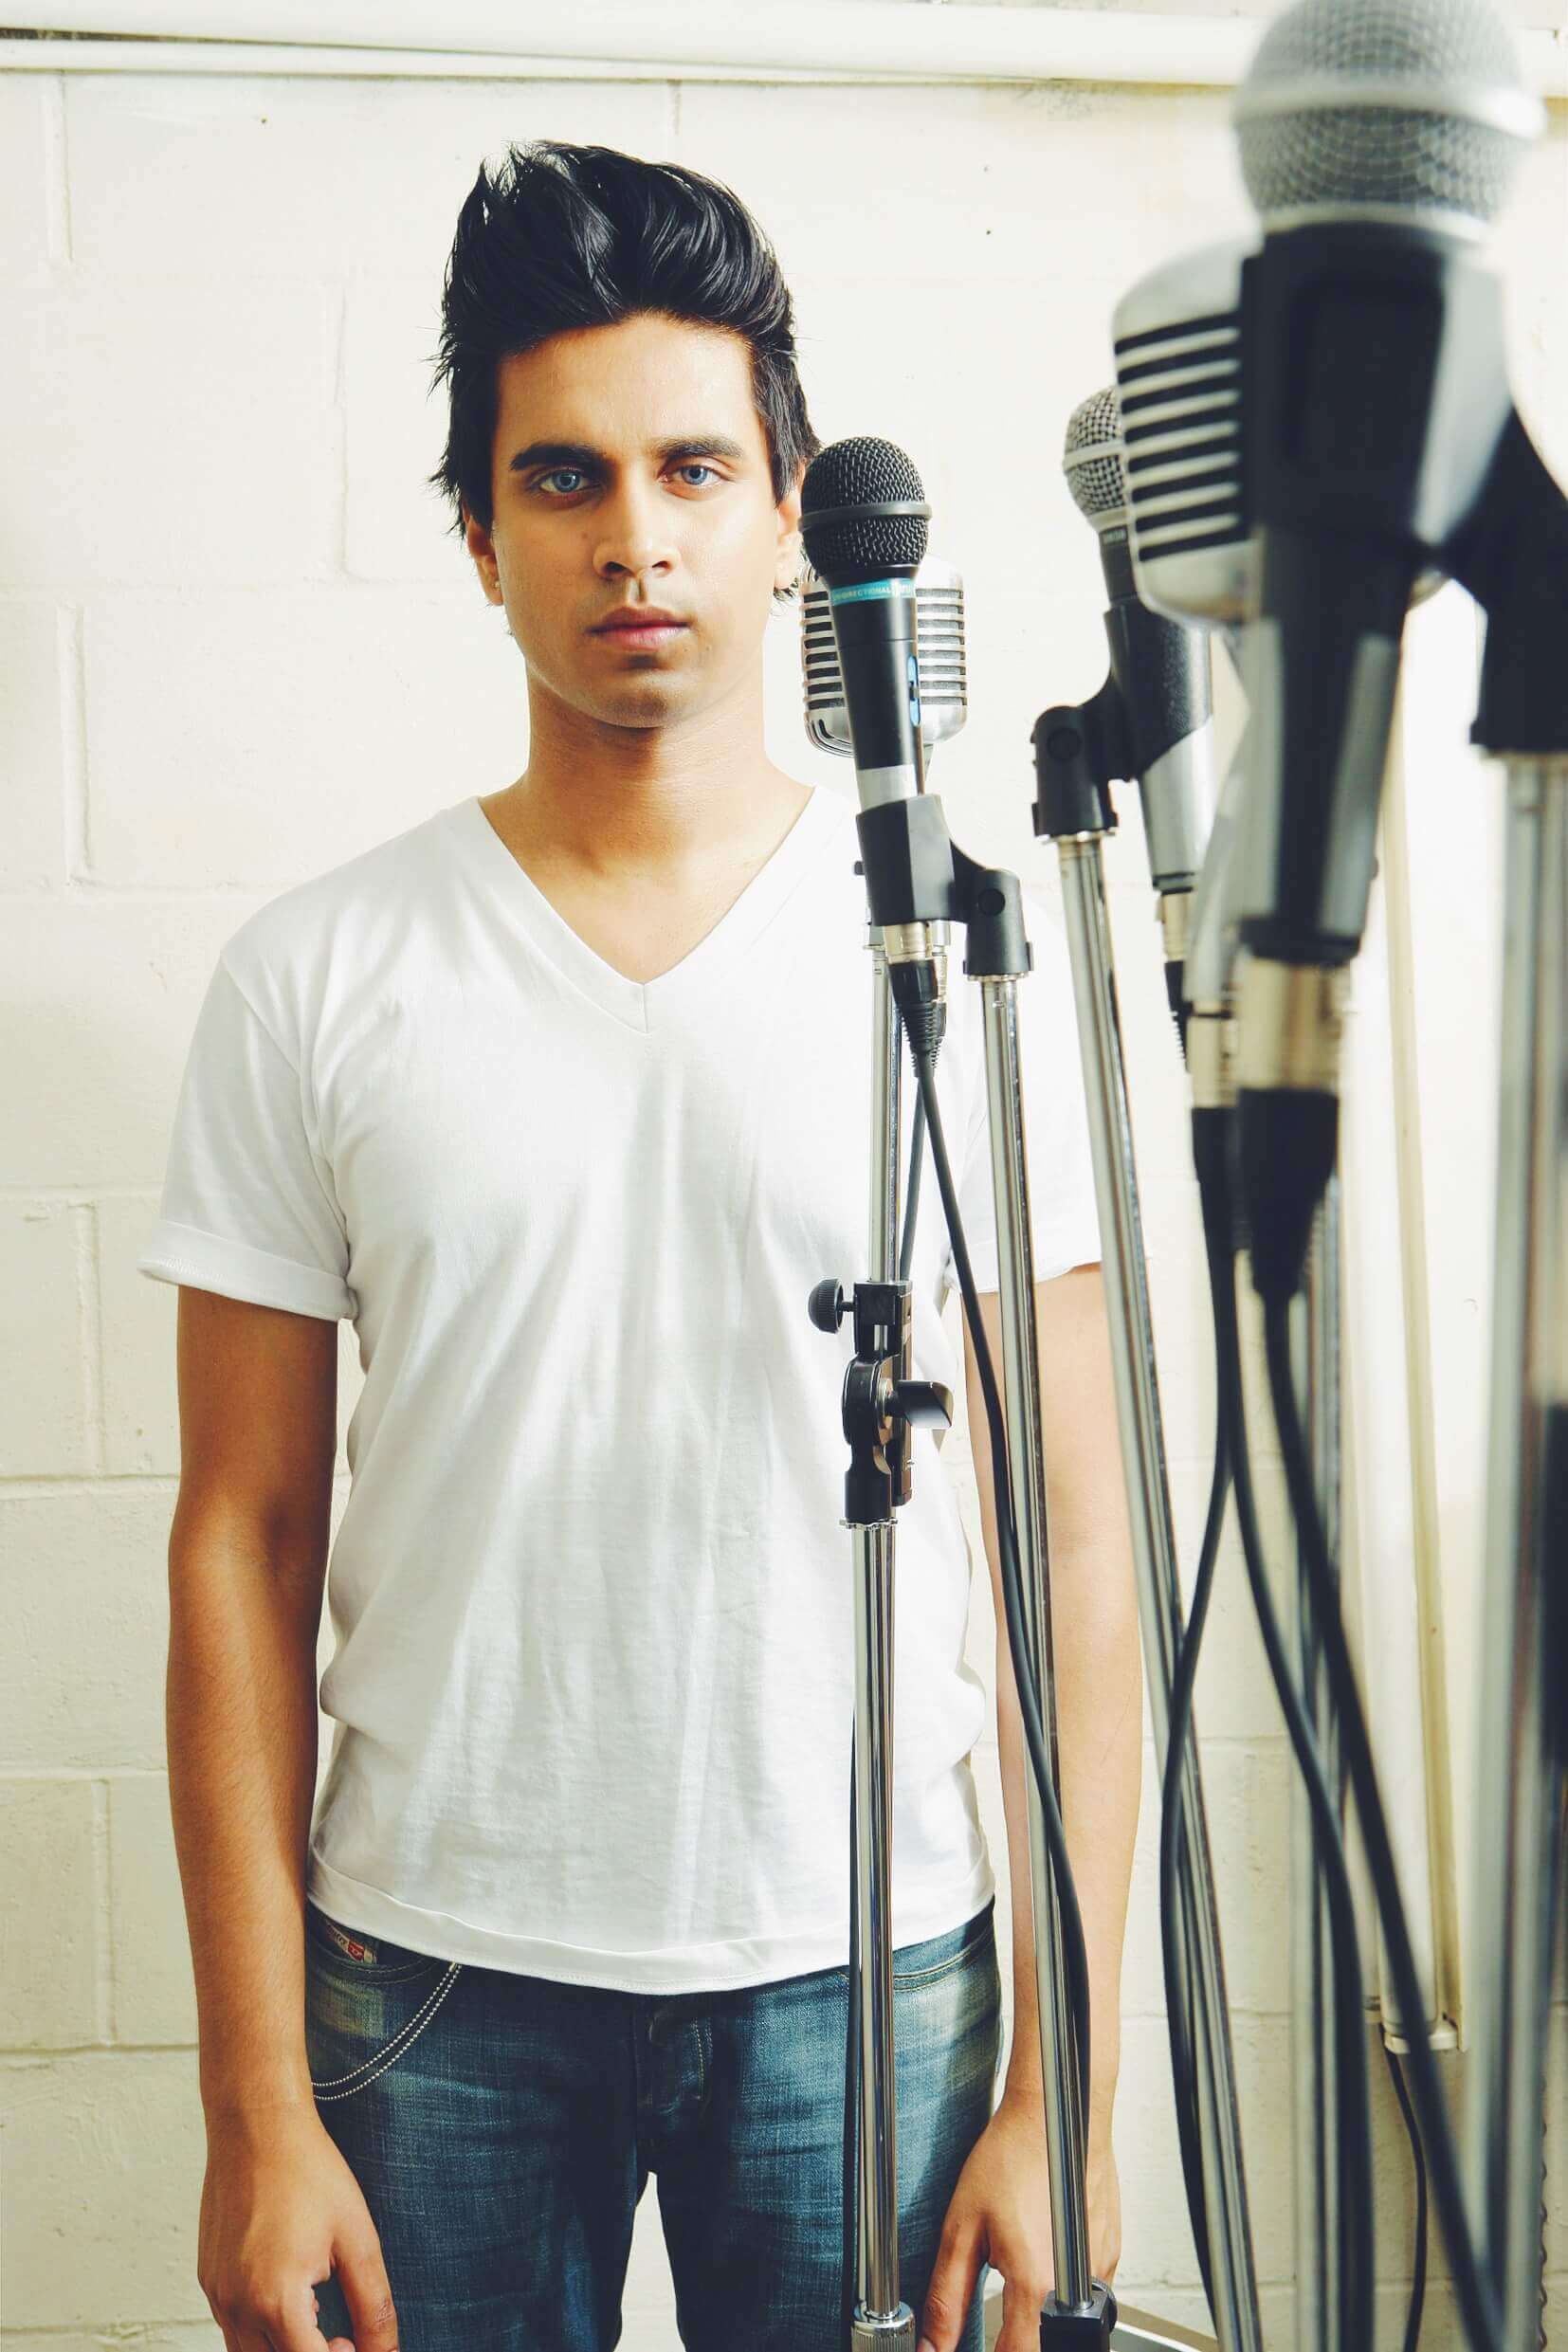 Vivek stands in front of a white cinderblock wall wearing a white v-neck t-shirt and blue jeans. Several microphones stand between her and the camera.